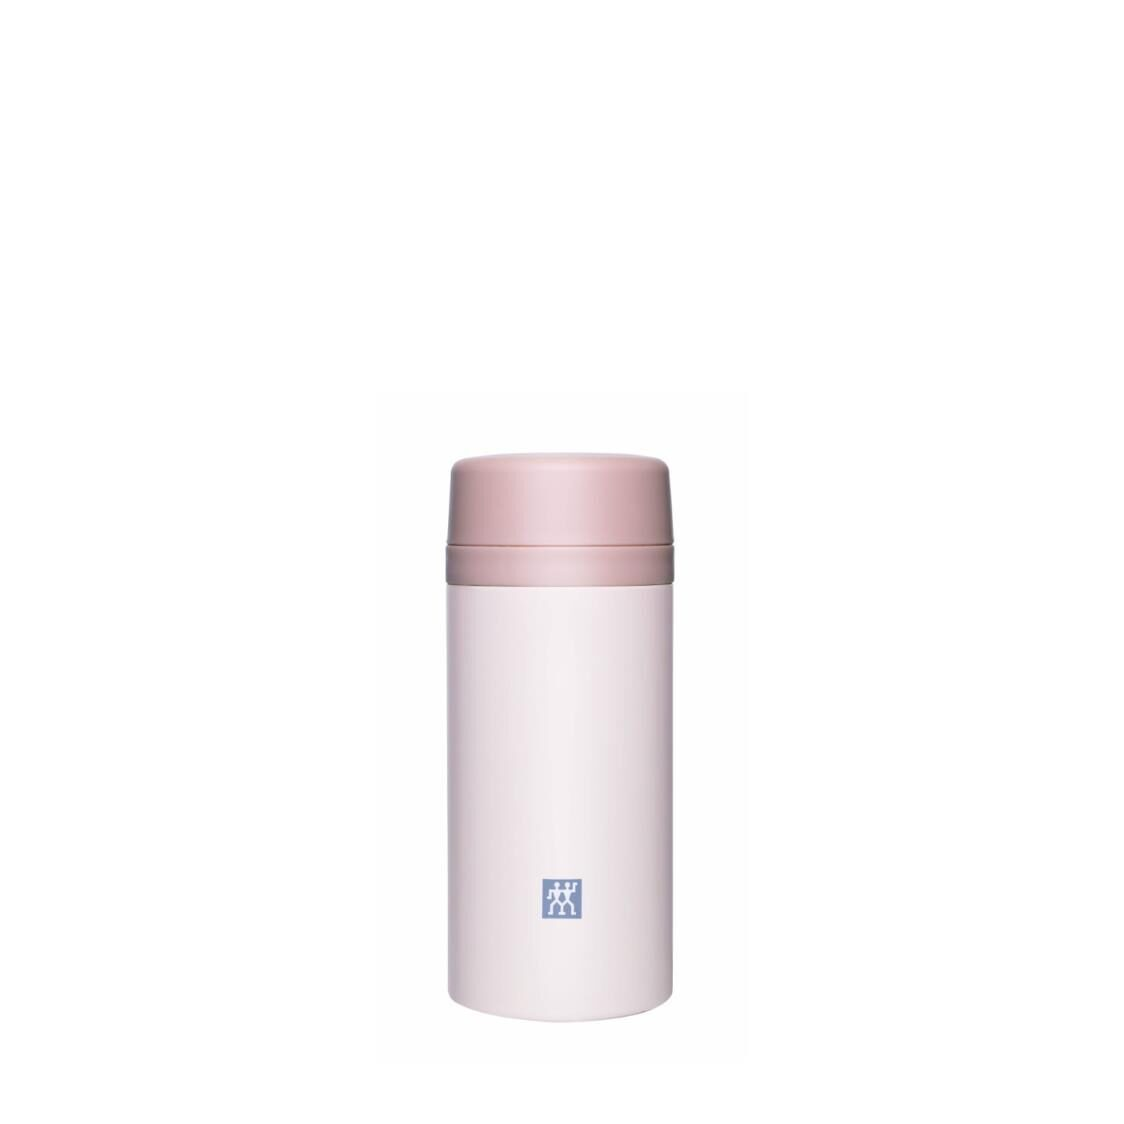 Zwilling Thermo Tea  Infuser Bottle 420 ml - Pink 39500-500